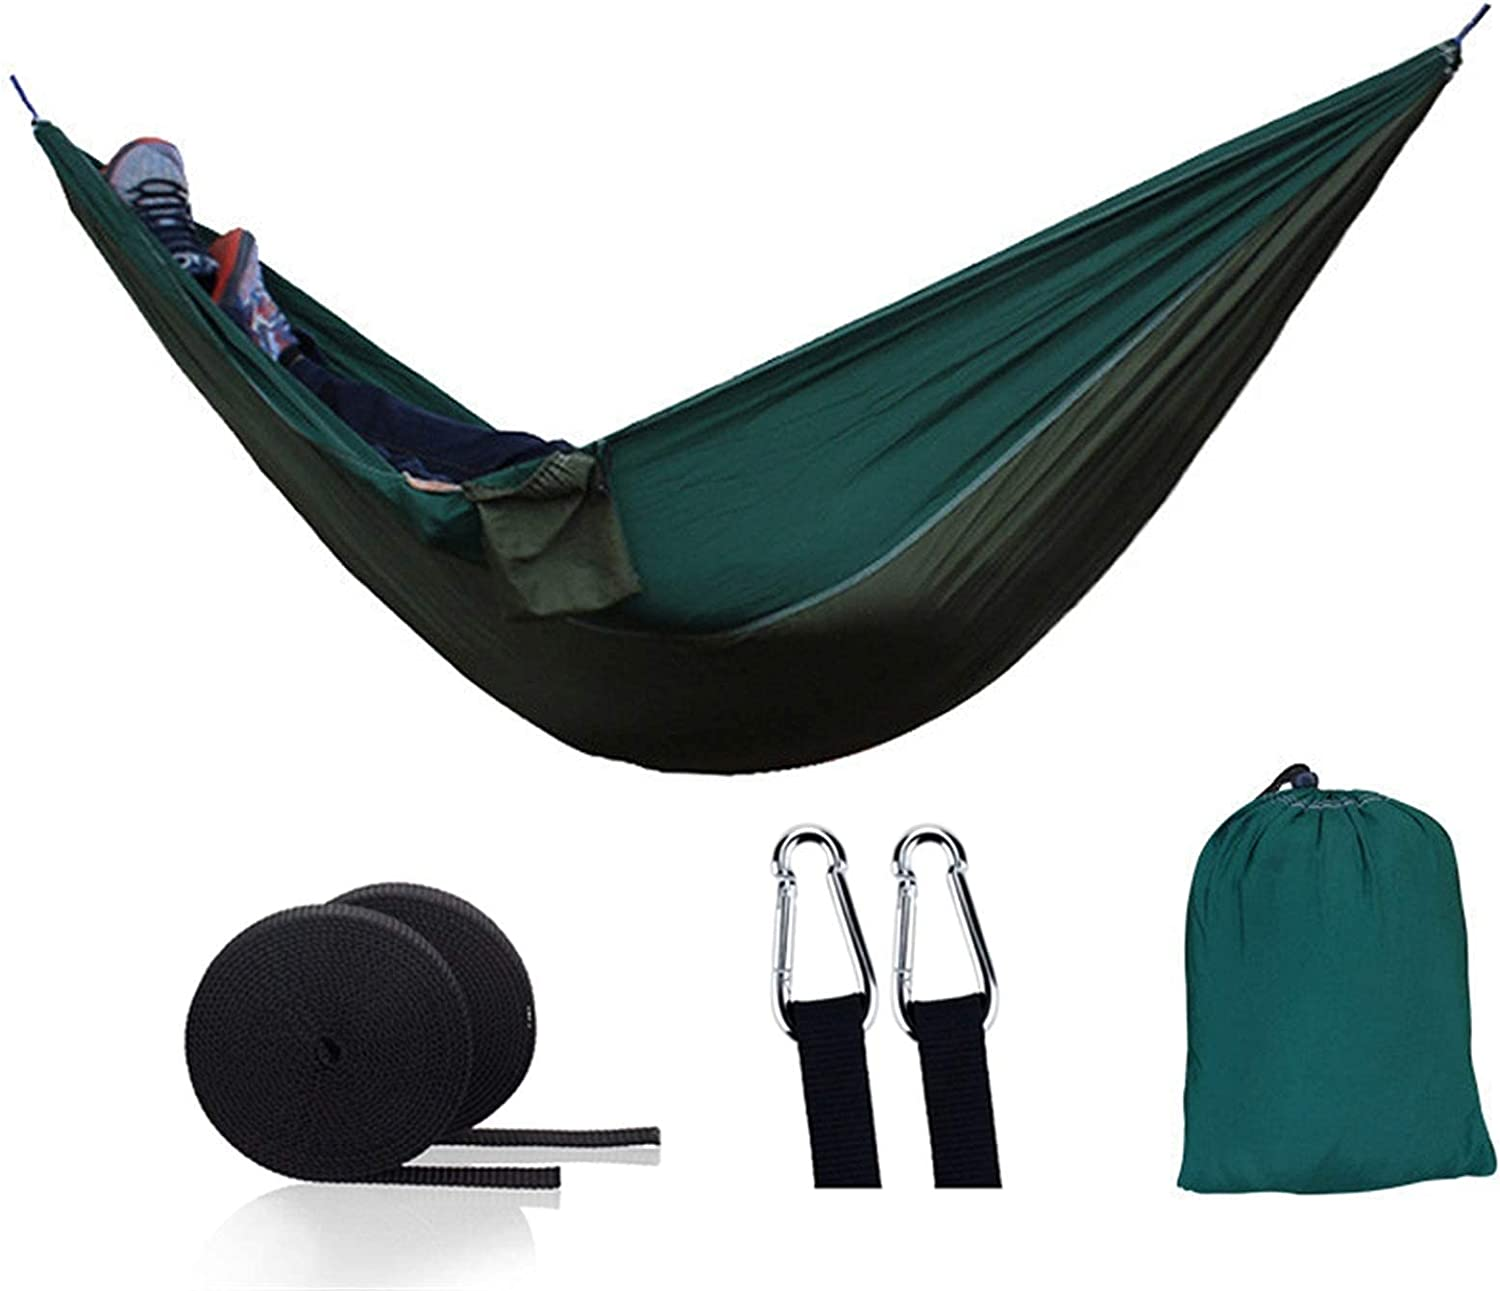 RVTYR 270 140 Camping Gear Ha Hanging Portable Hammock Parachute Ranking integrated Ranking TOP7 1st place